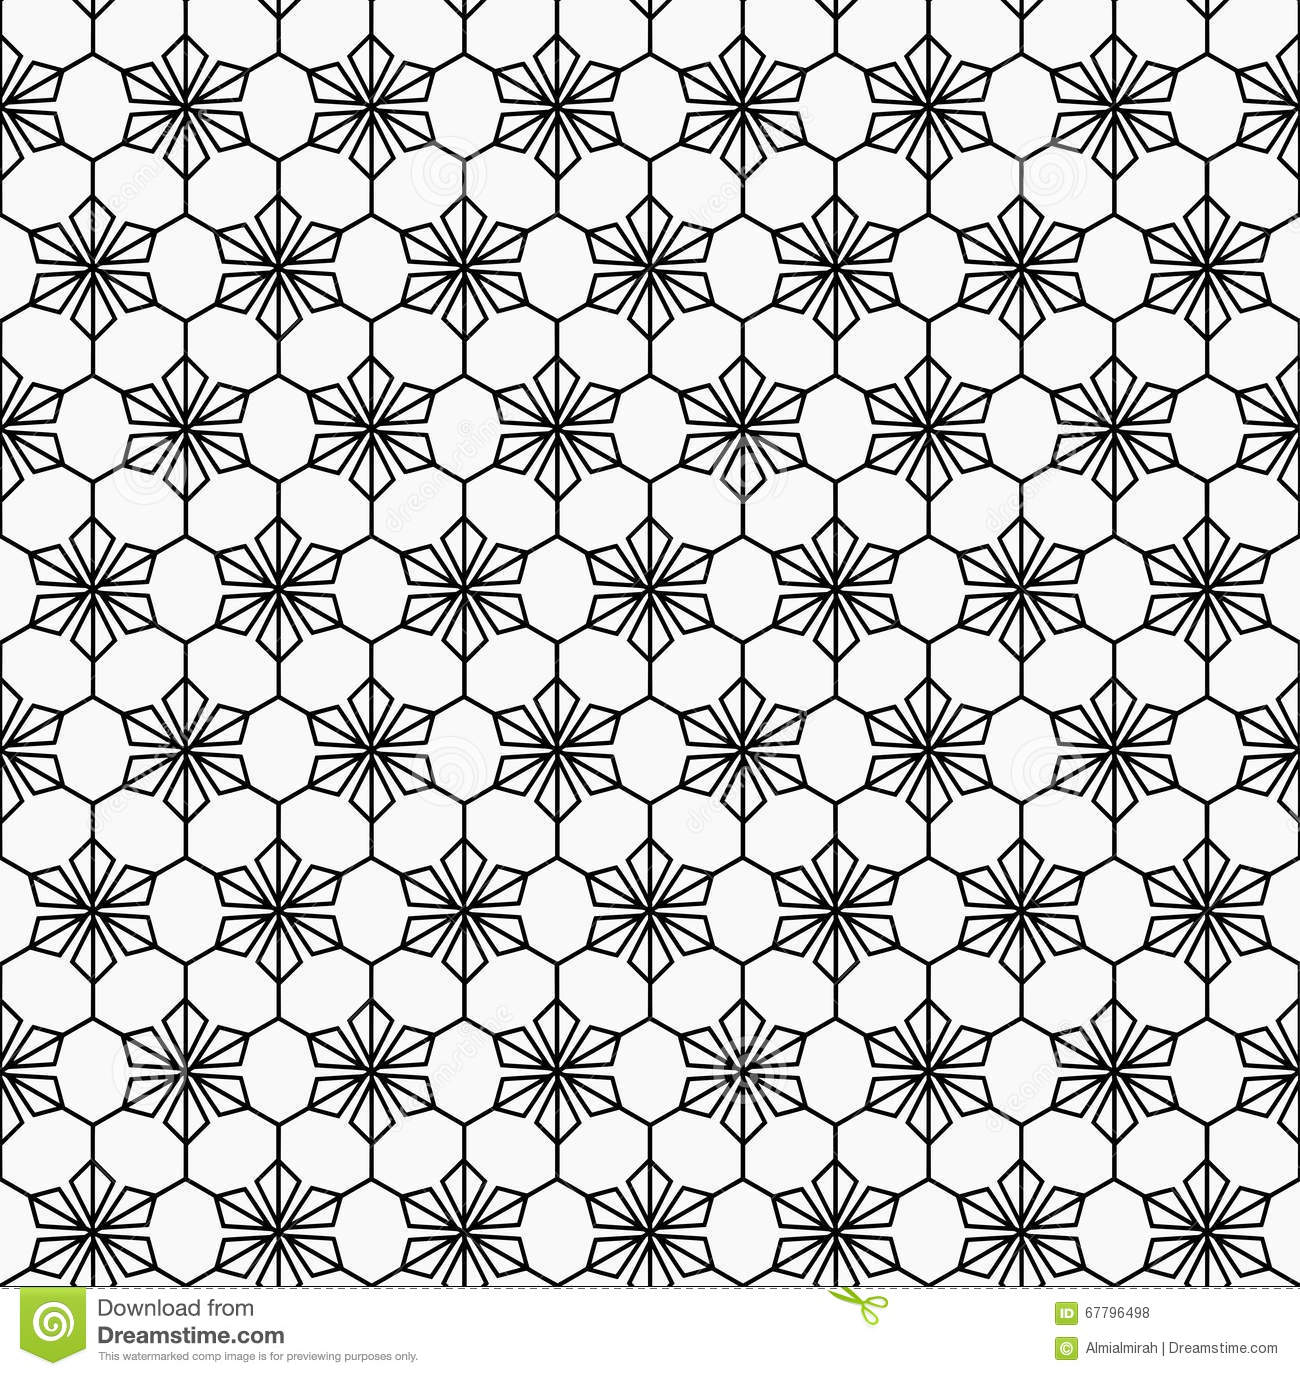 Geometric Flower Seamless Pattern Stock Vector Illustration Of Background Patterns 67796498